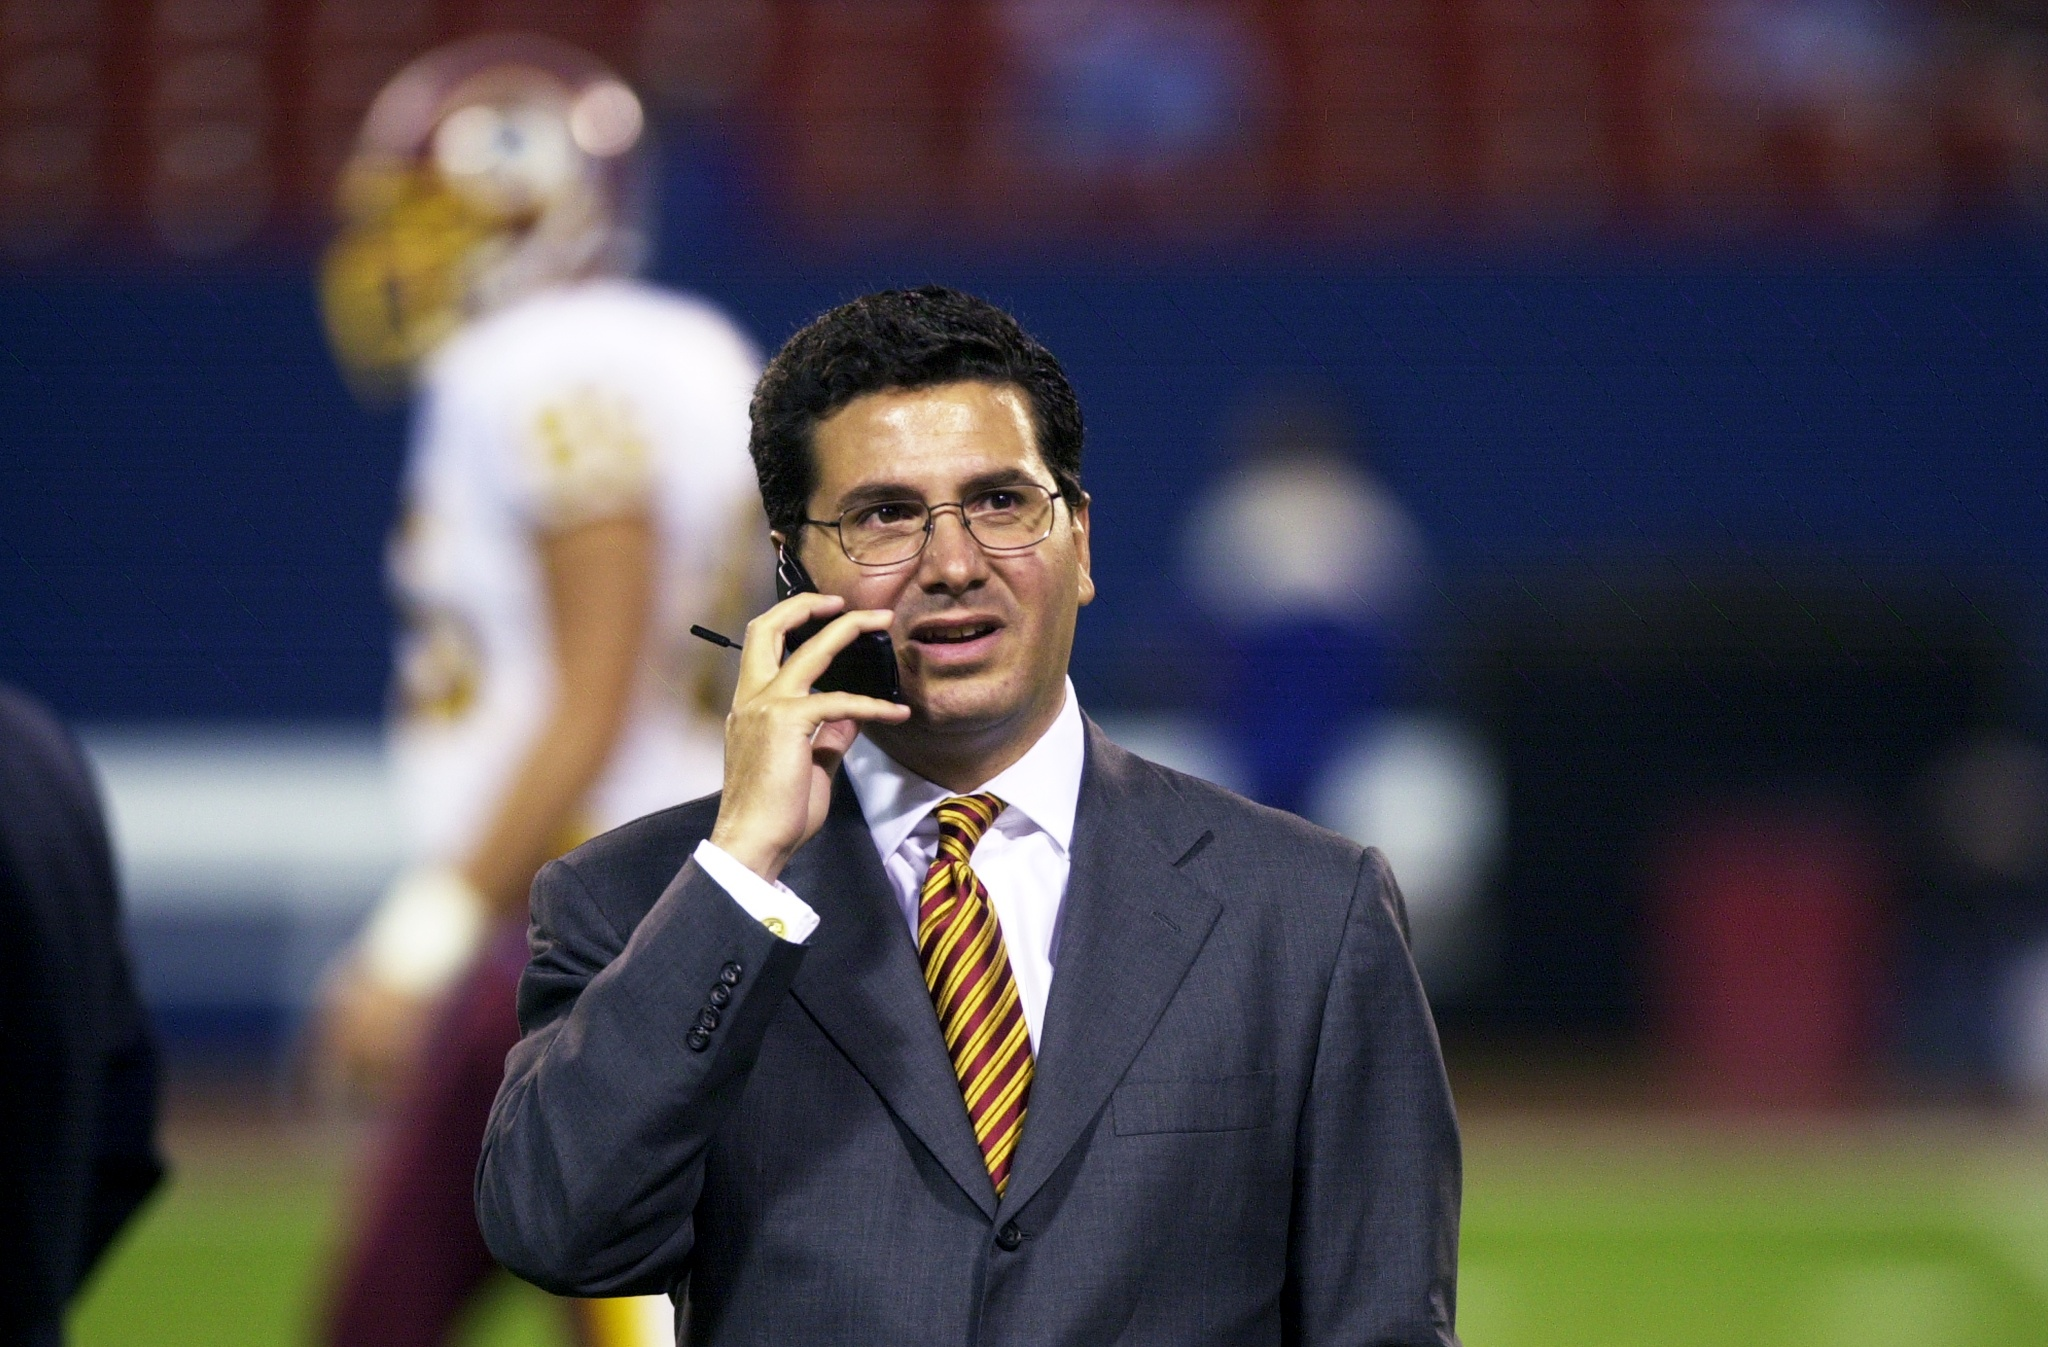 Team owner Daniel Snyder